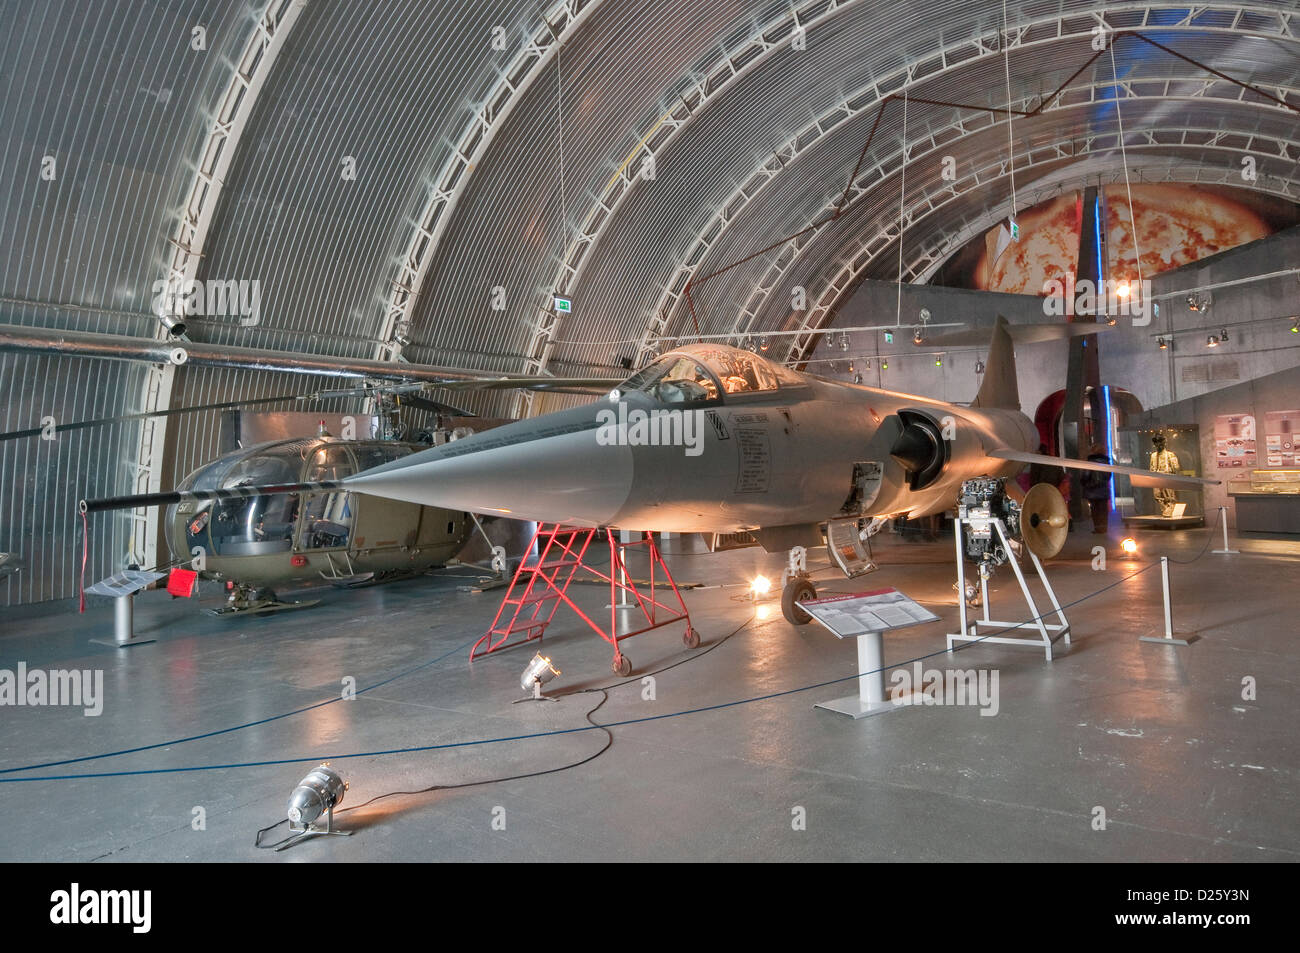 Lockheed F-104S ASA-M Starfighter, US jet fighter, Polish Aviation Museum in Krakow, Poland - Stock Image